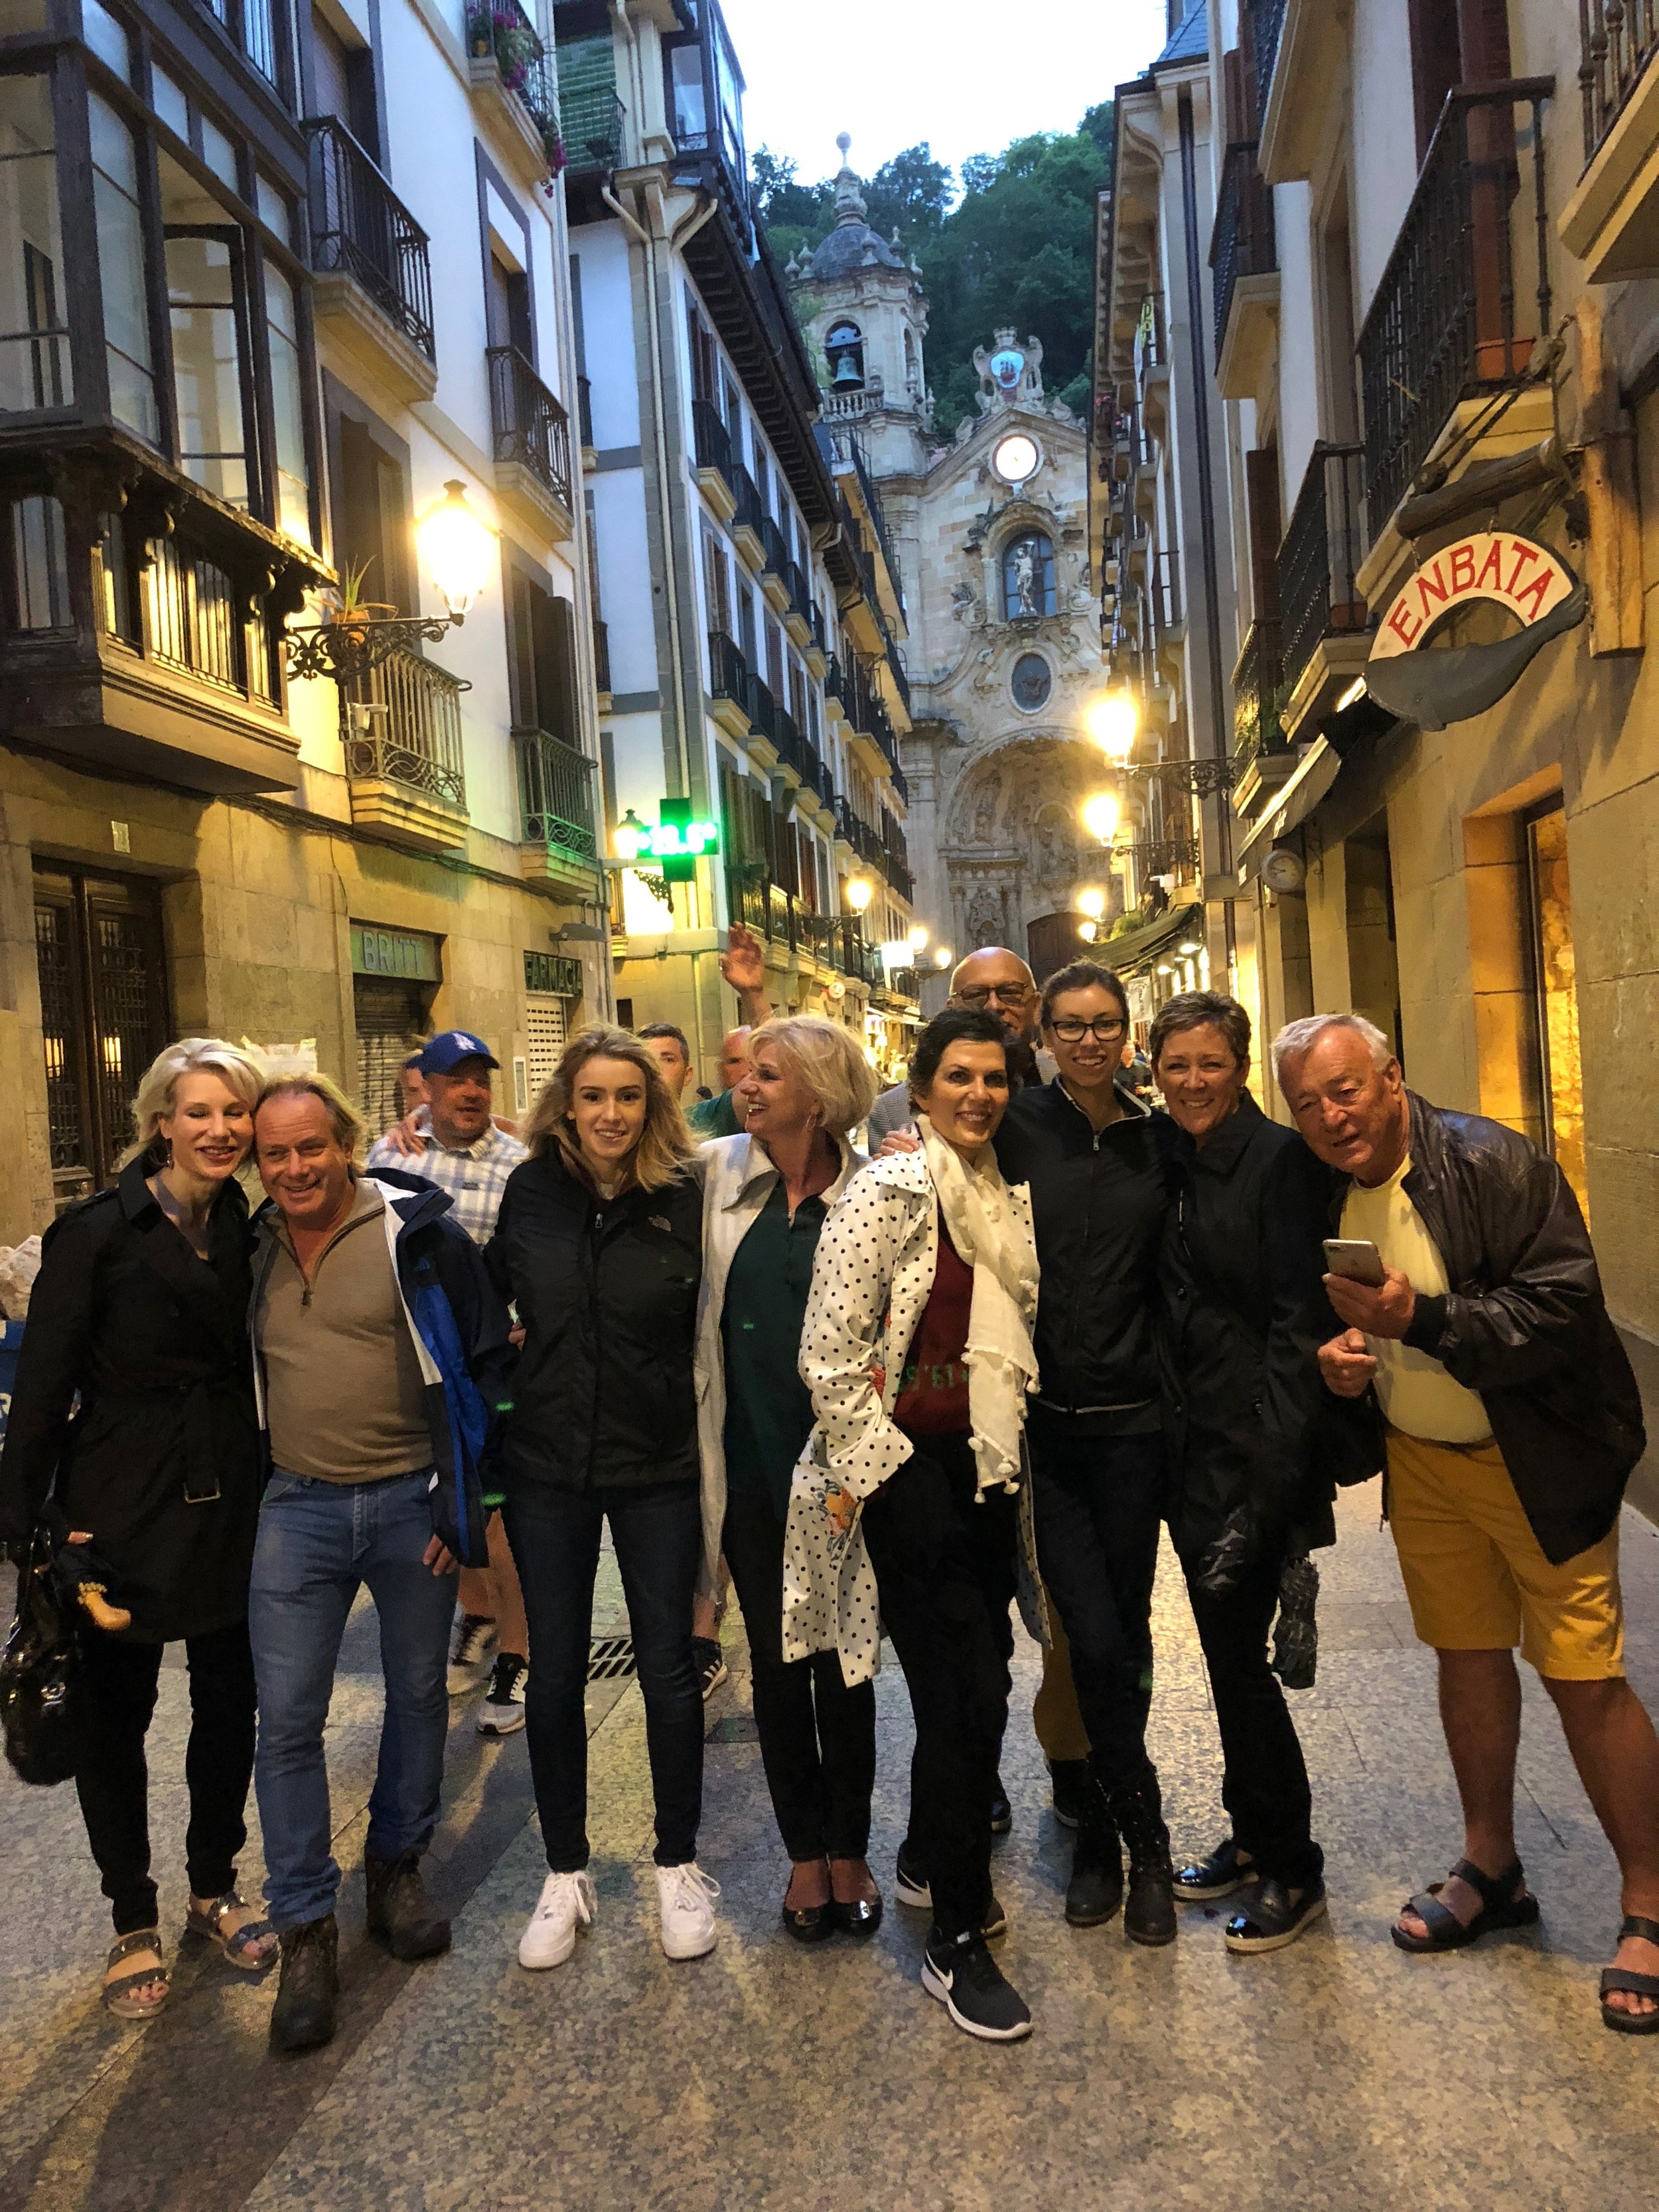 Out on the town in San Sebastian